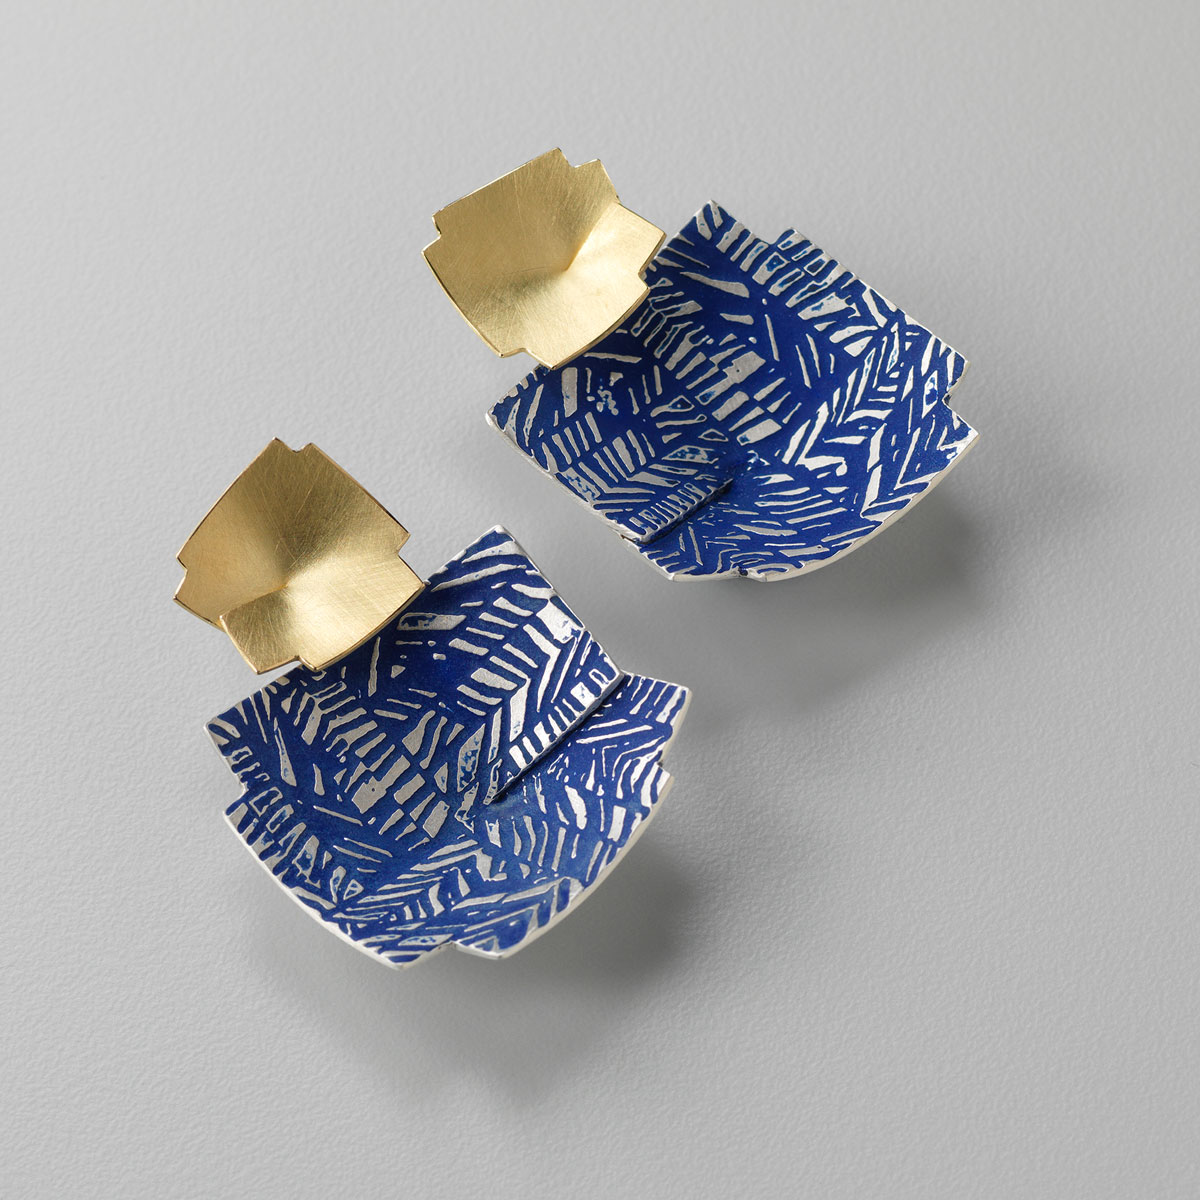 'Weave' Blue and Gold Double Drop Earrings